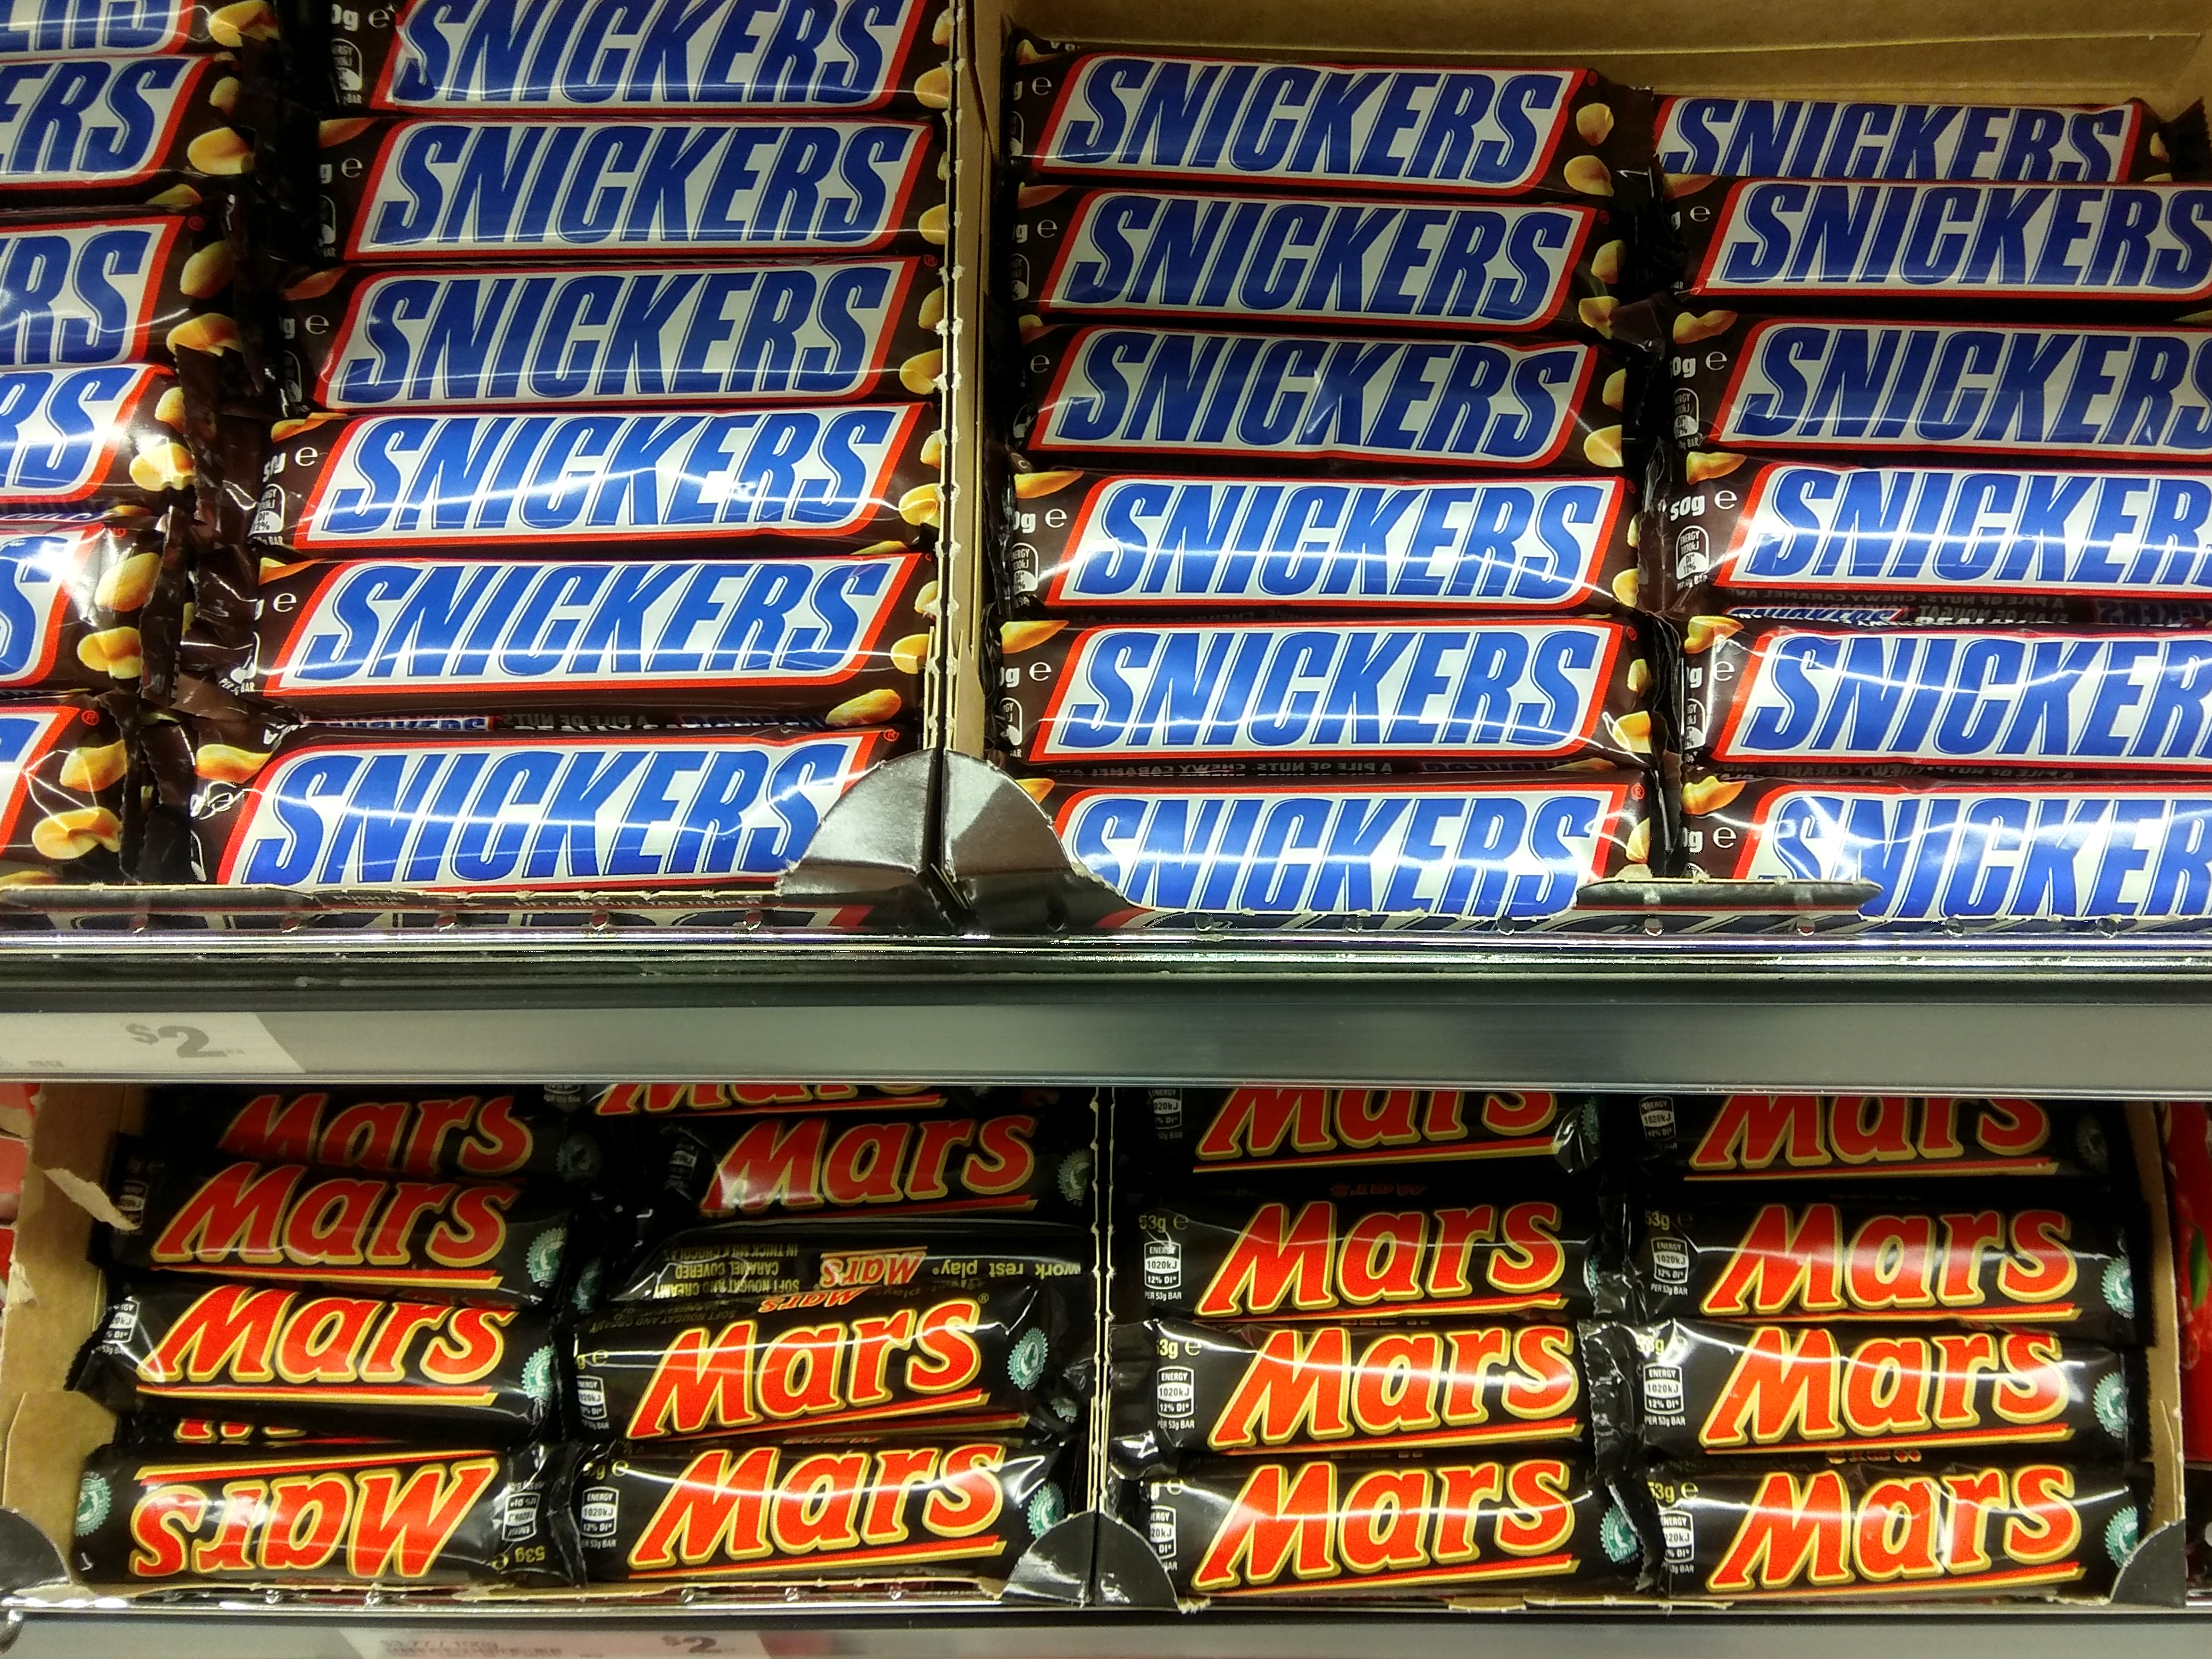 Snickers and Mars chocolate bars on store shelf.